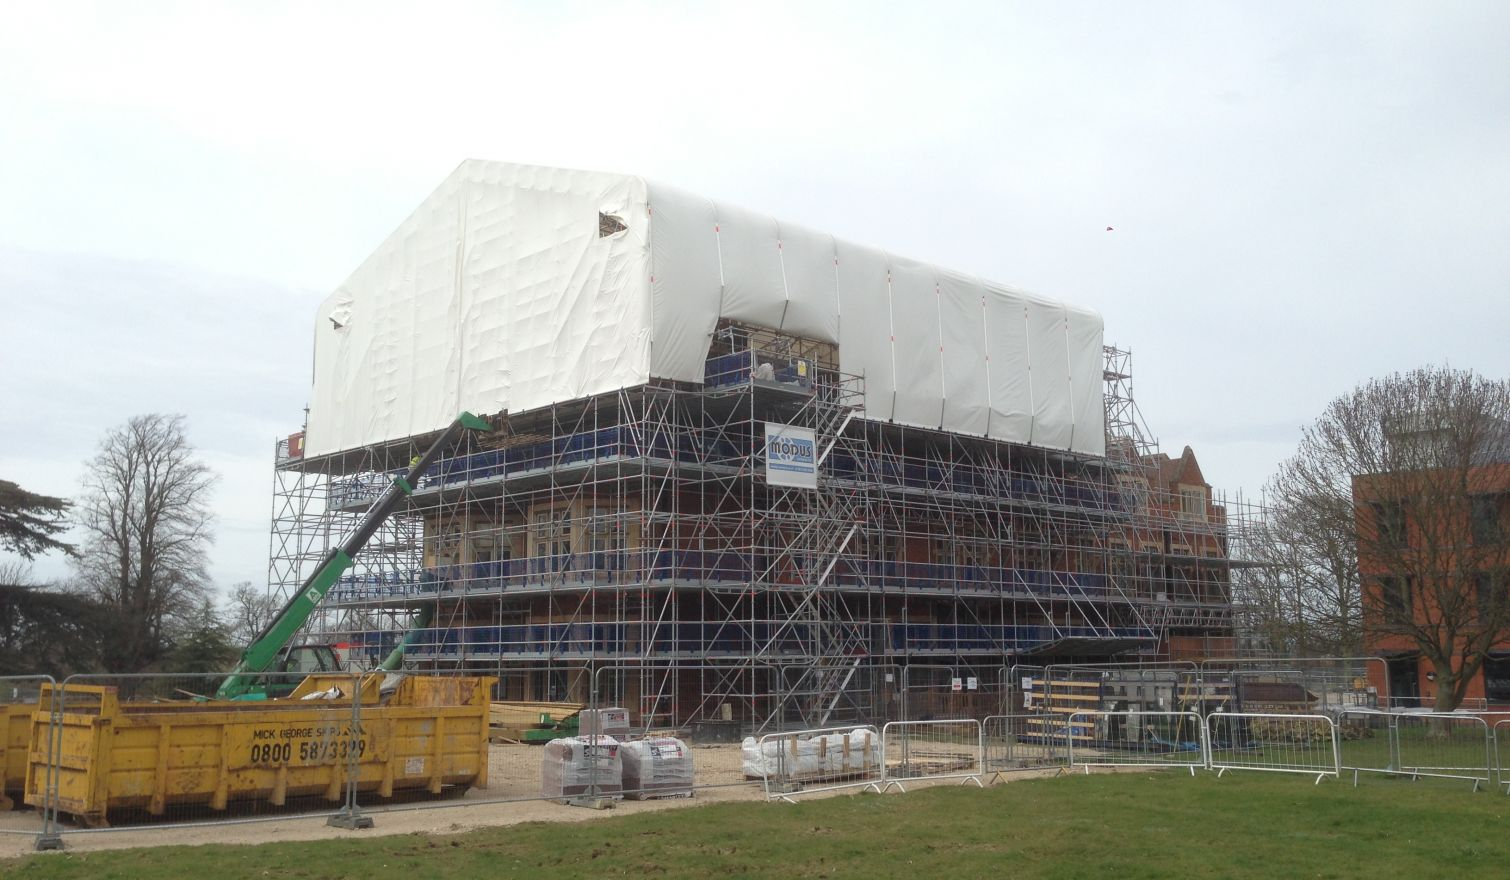 Tempsford Hall - Layher Keder XL Rolling Roof and Allround Access Scaffold